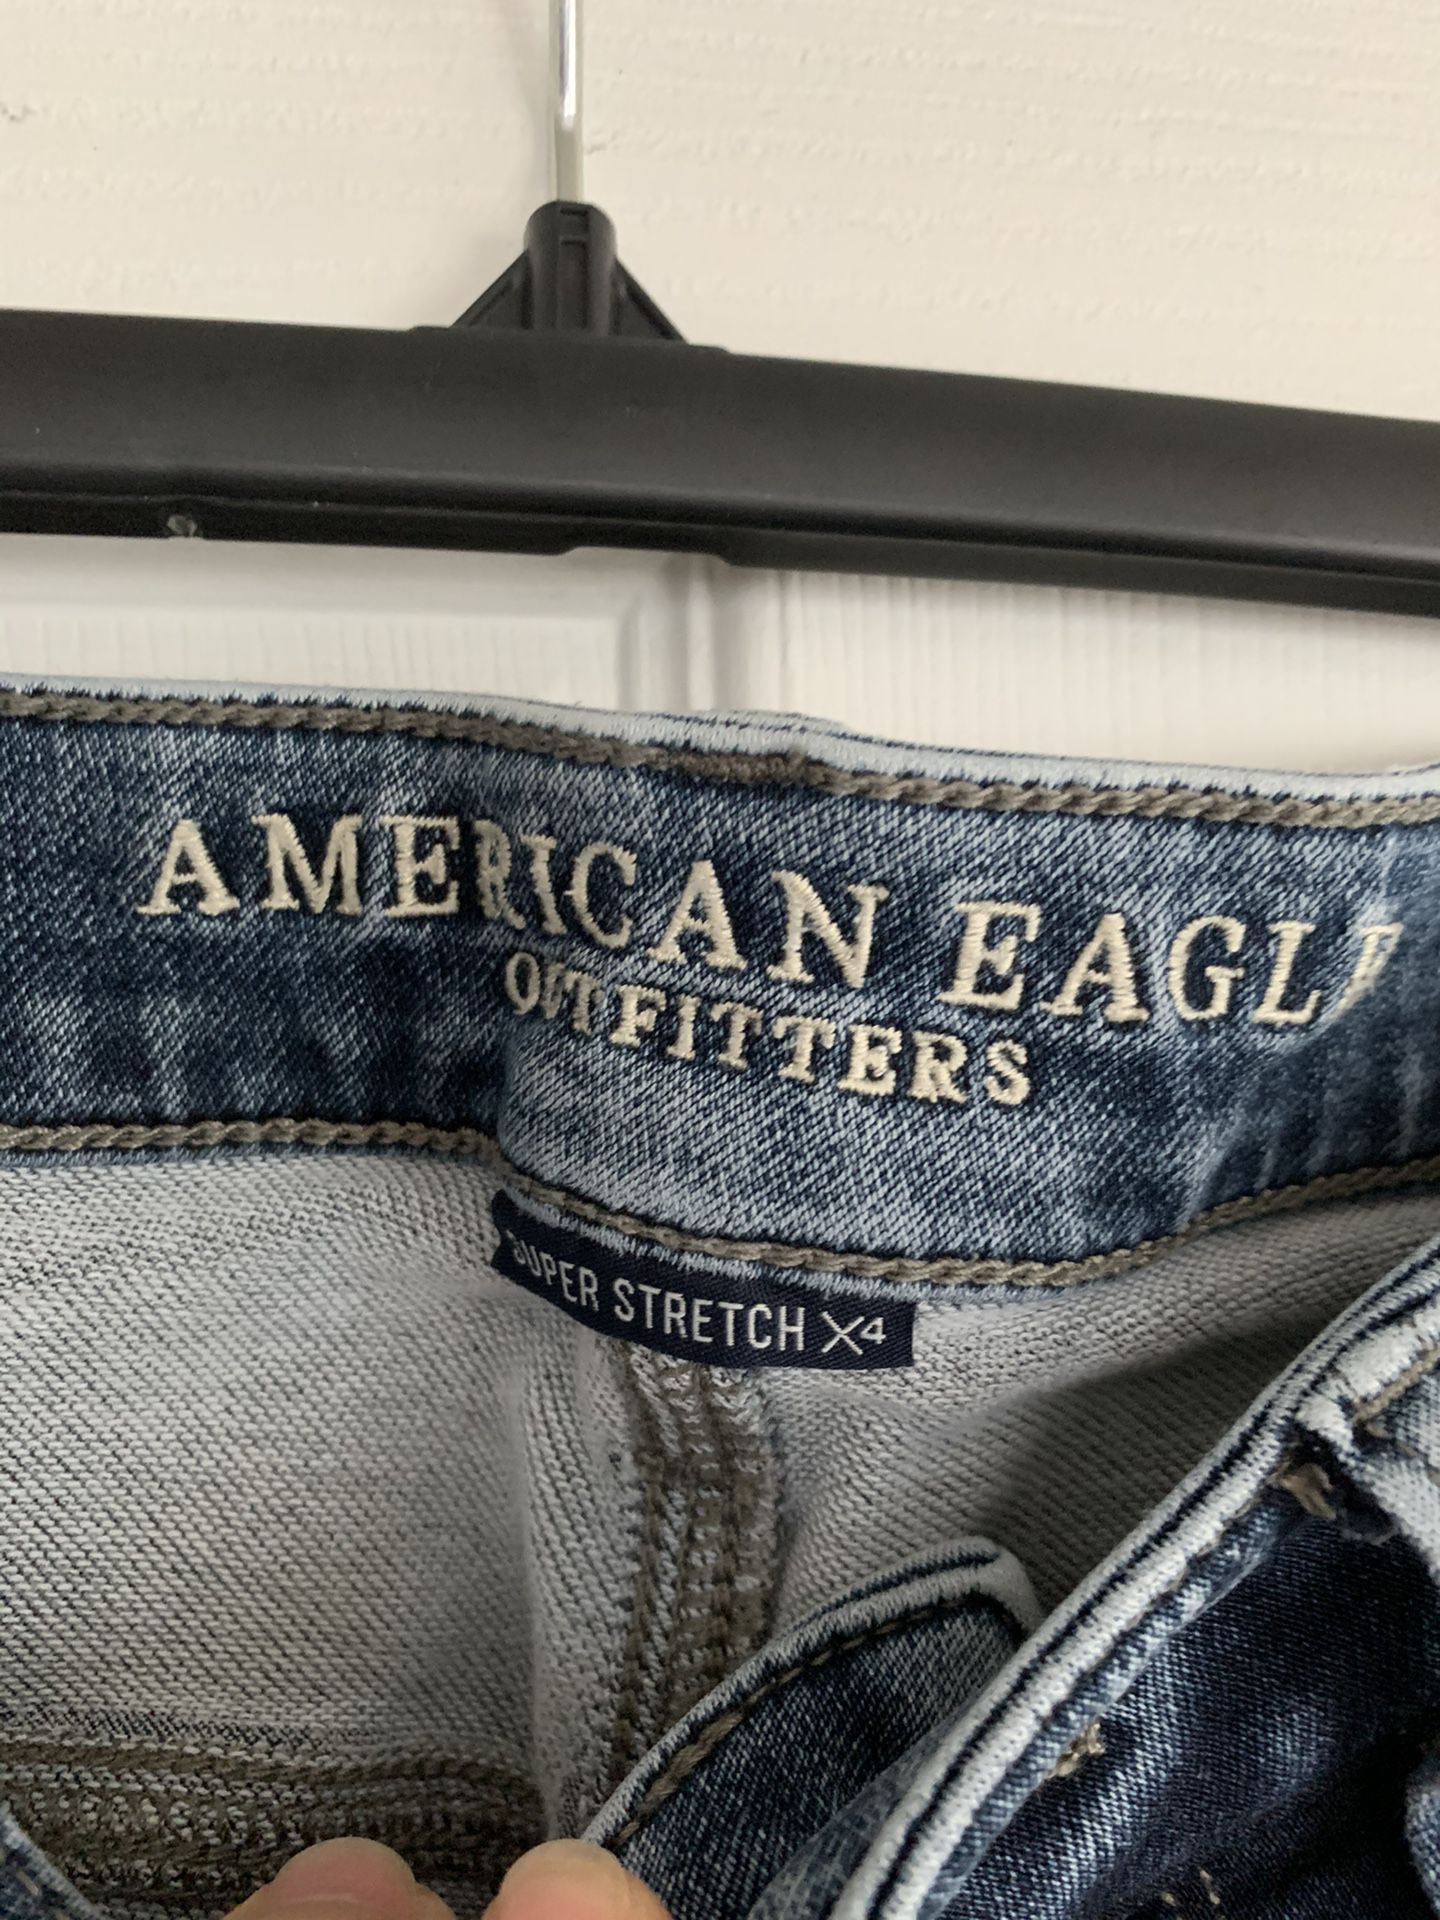 American eagle outfiters